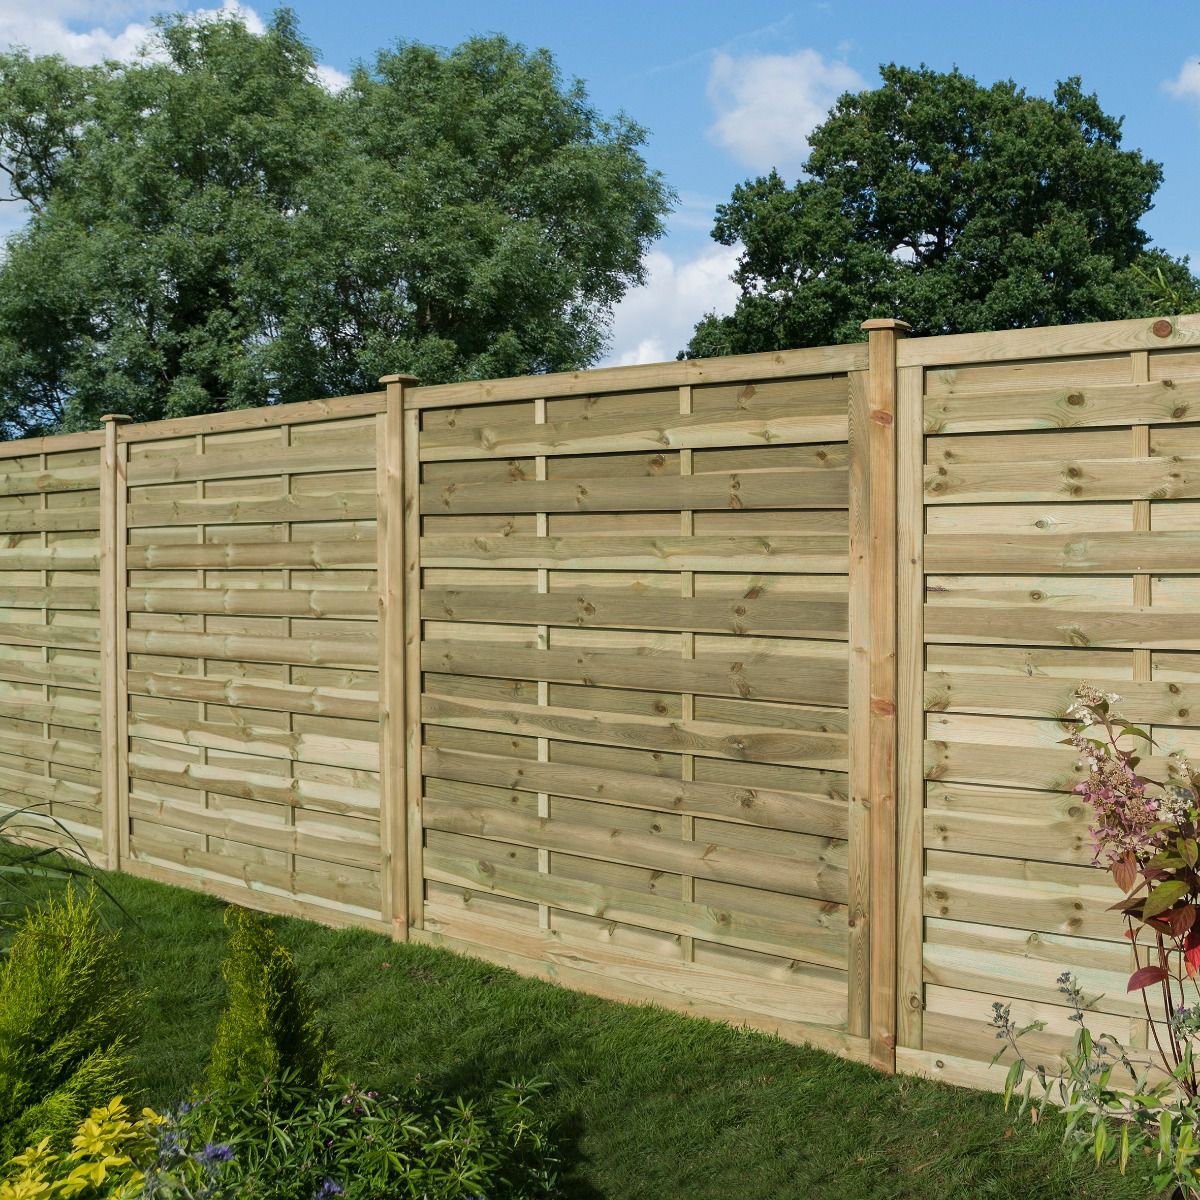 Gresty Pressure Treated Wooden Fence Panel